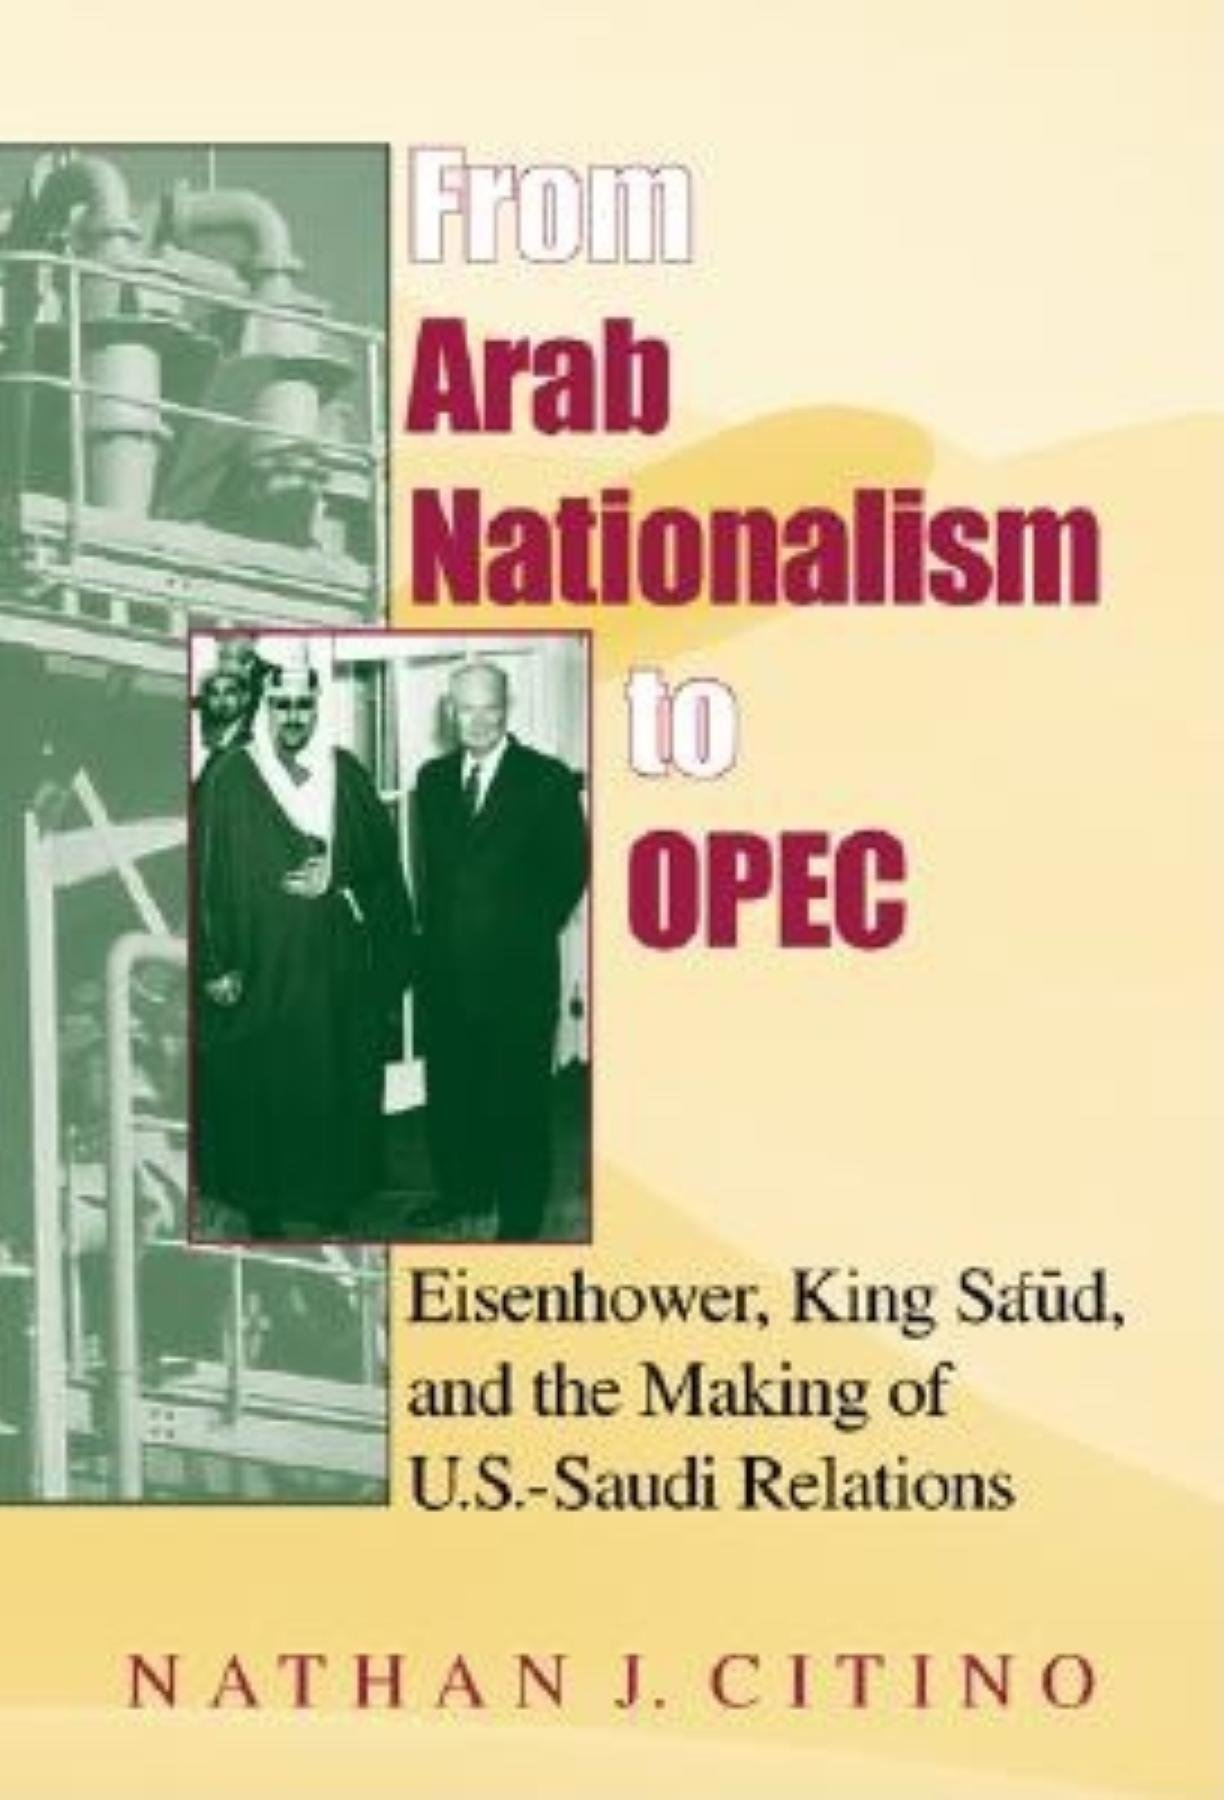 From Arab Nationalism to OPEC:  Eisenhower, King Sa'ud, and the Making of U.S.-Saudi Relations (Indiana Series in Middle East Studies)